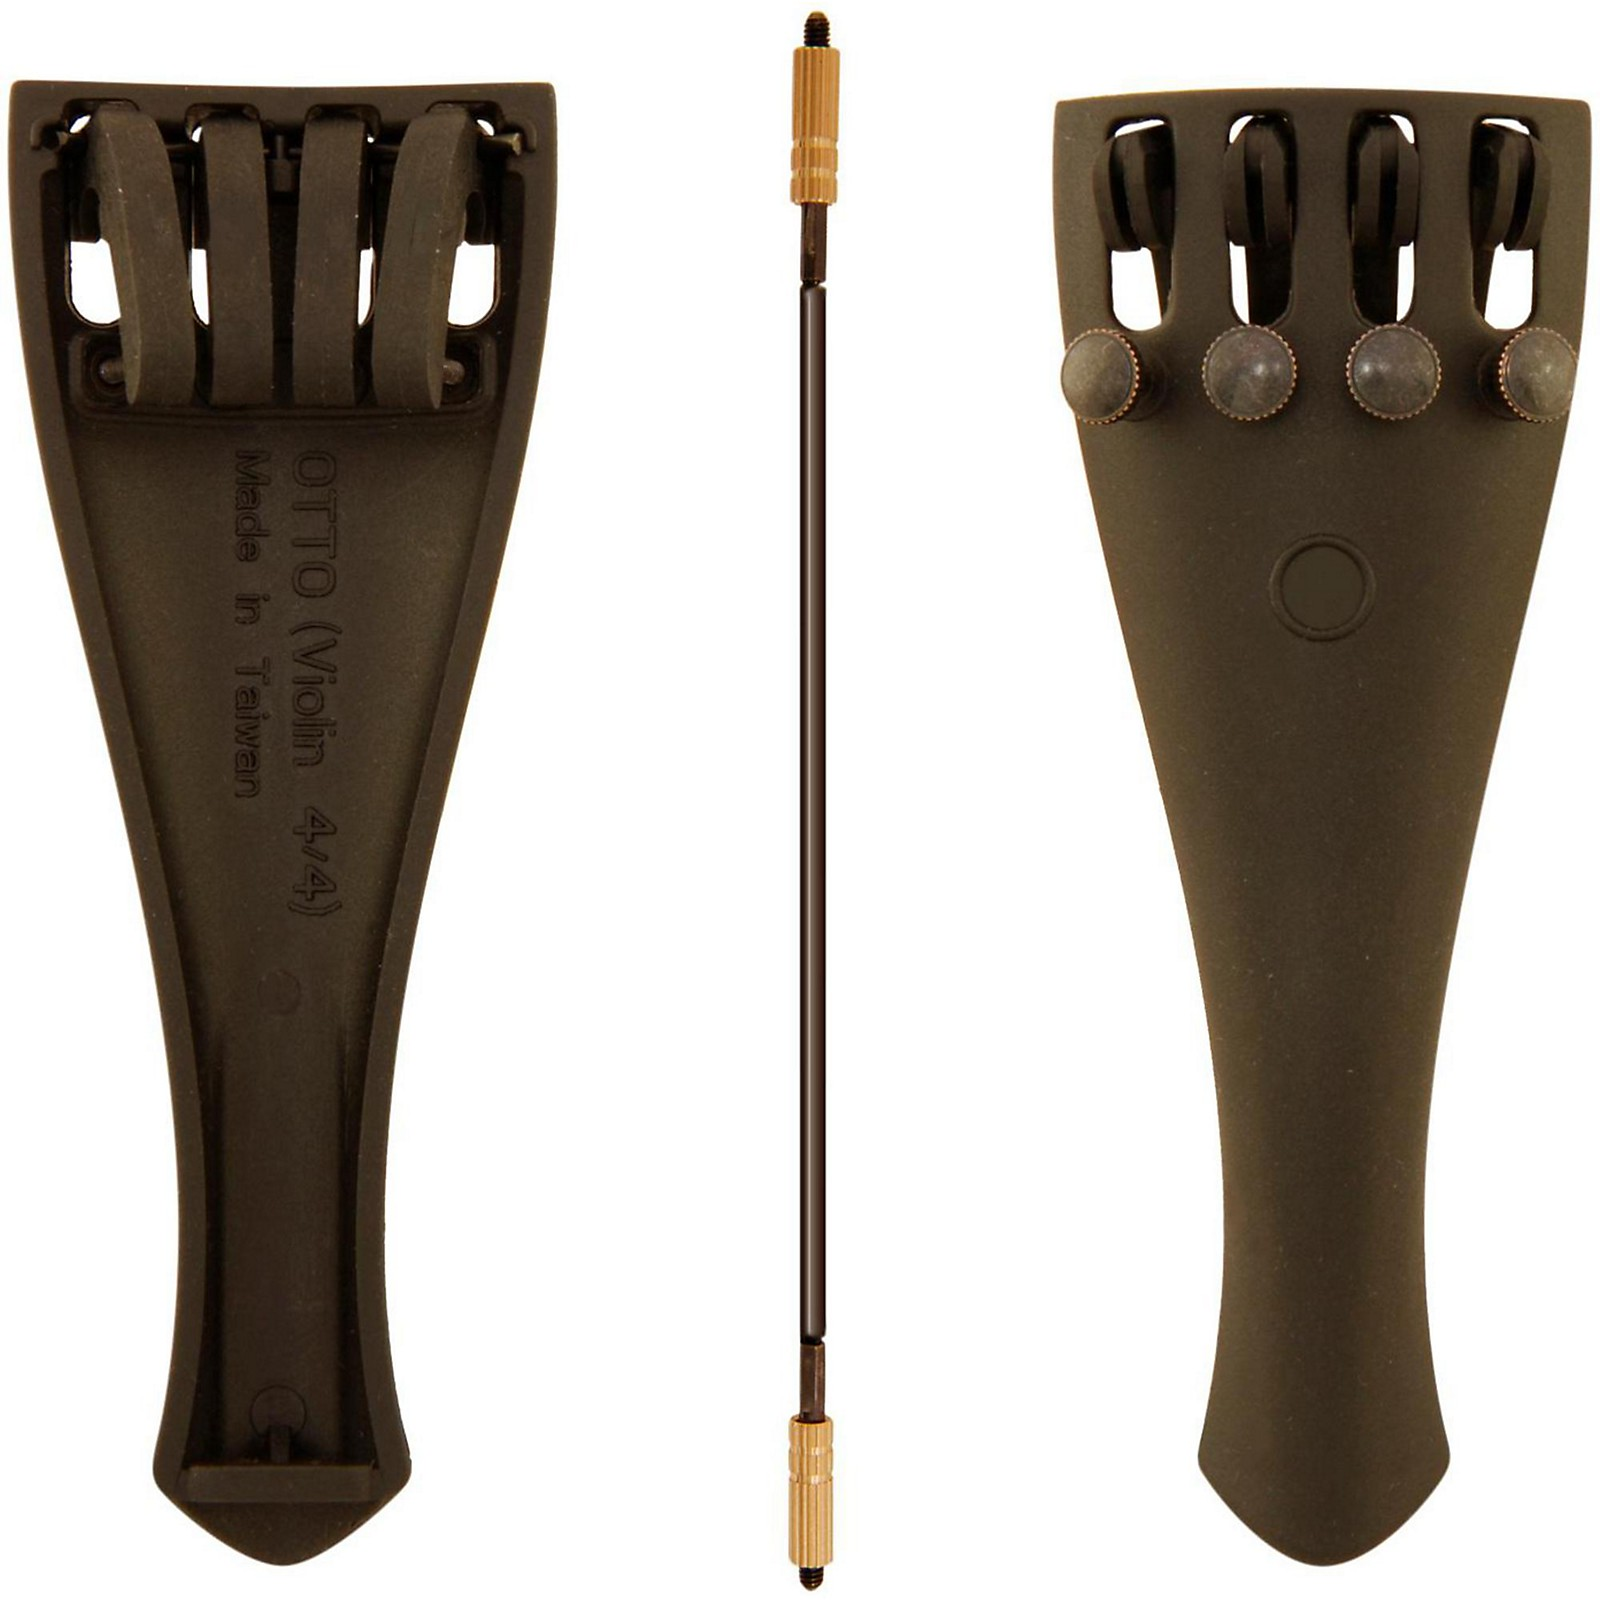 Otto Musica Carbon Composite Violin Tailpiece with Four Built-In Fine Tuners and Braided Steel Tailgut